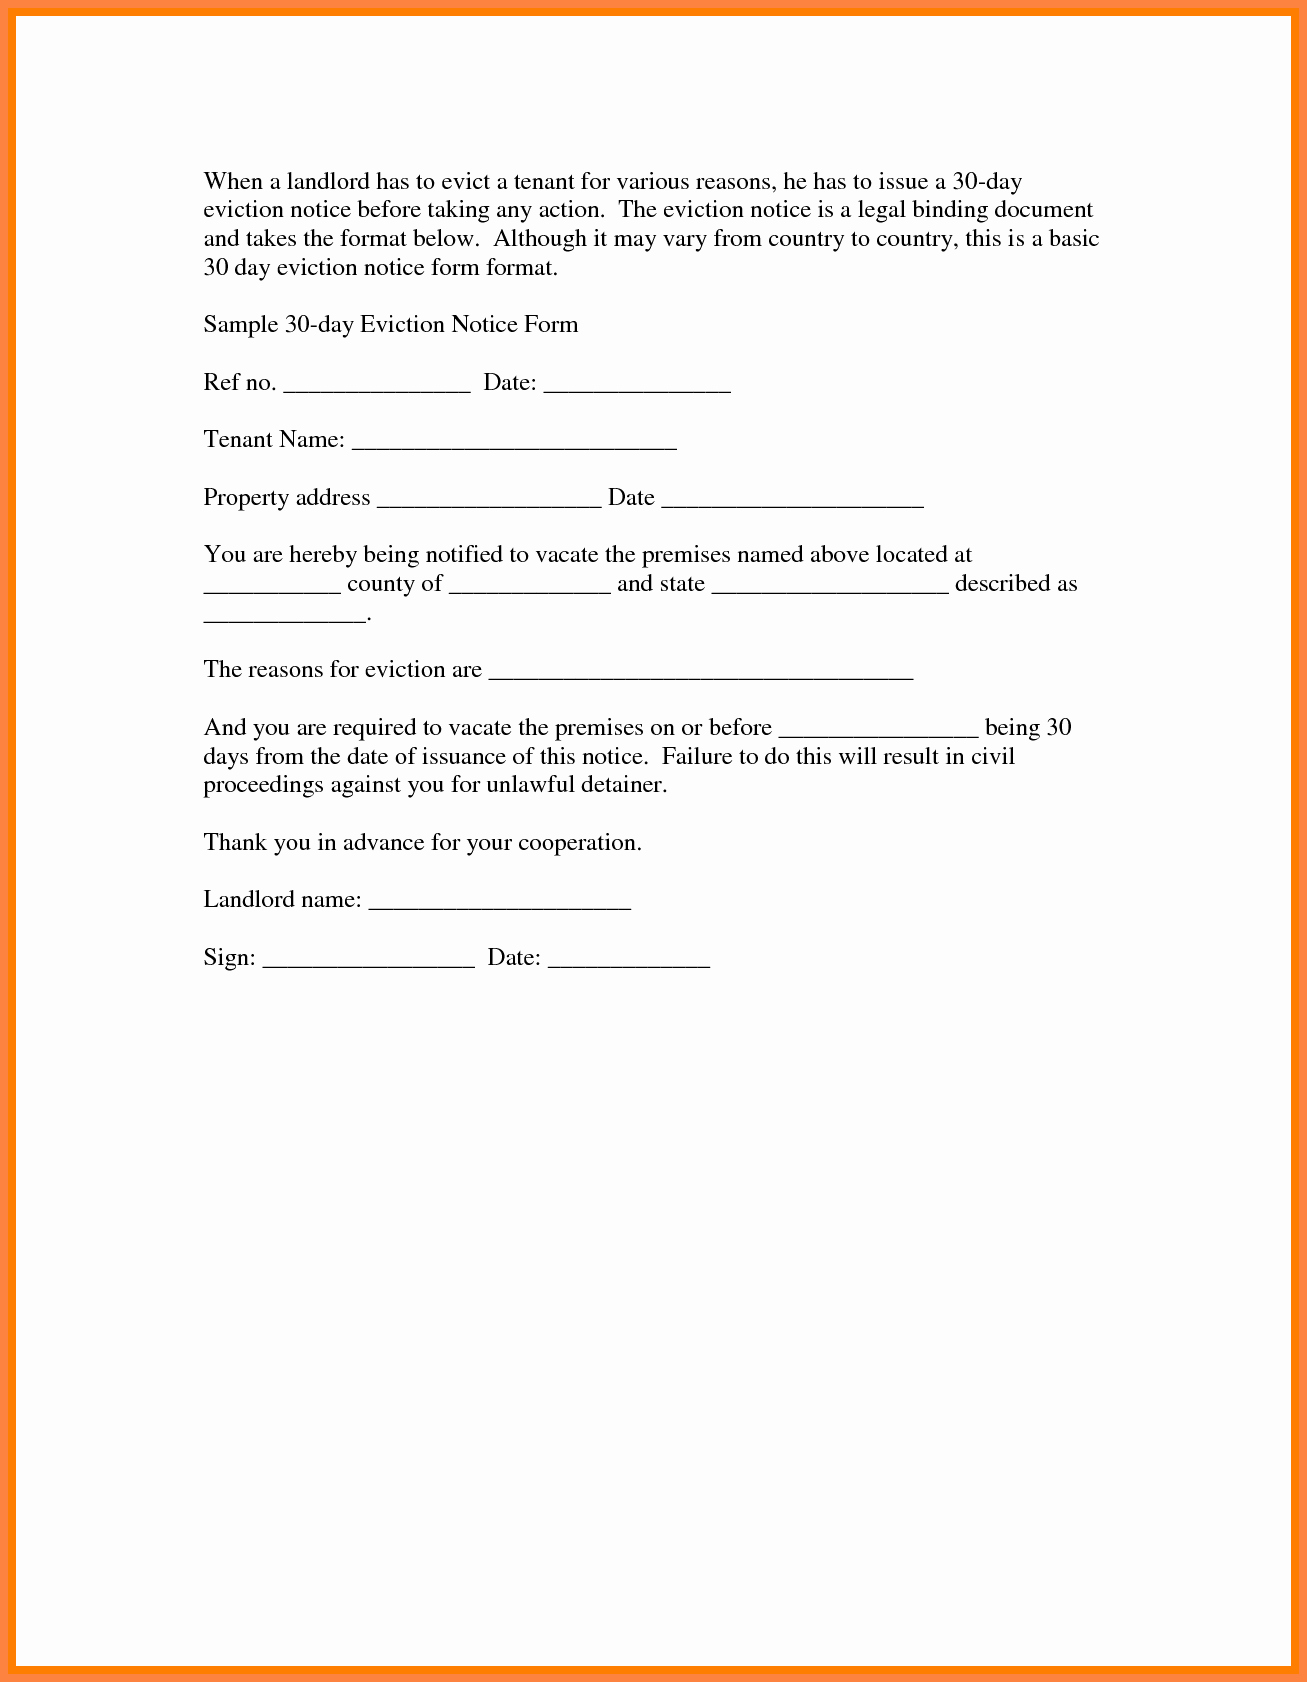 30 Days Eviction Notice Template Elegant 6 30 Day Eviction Notice Pdf